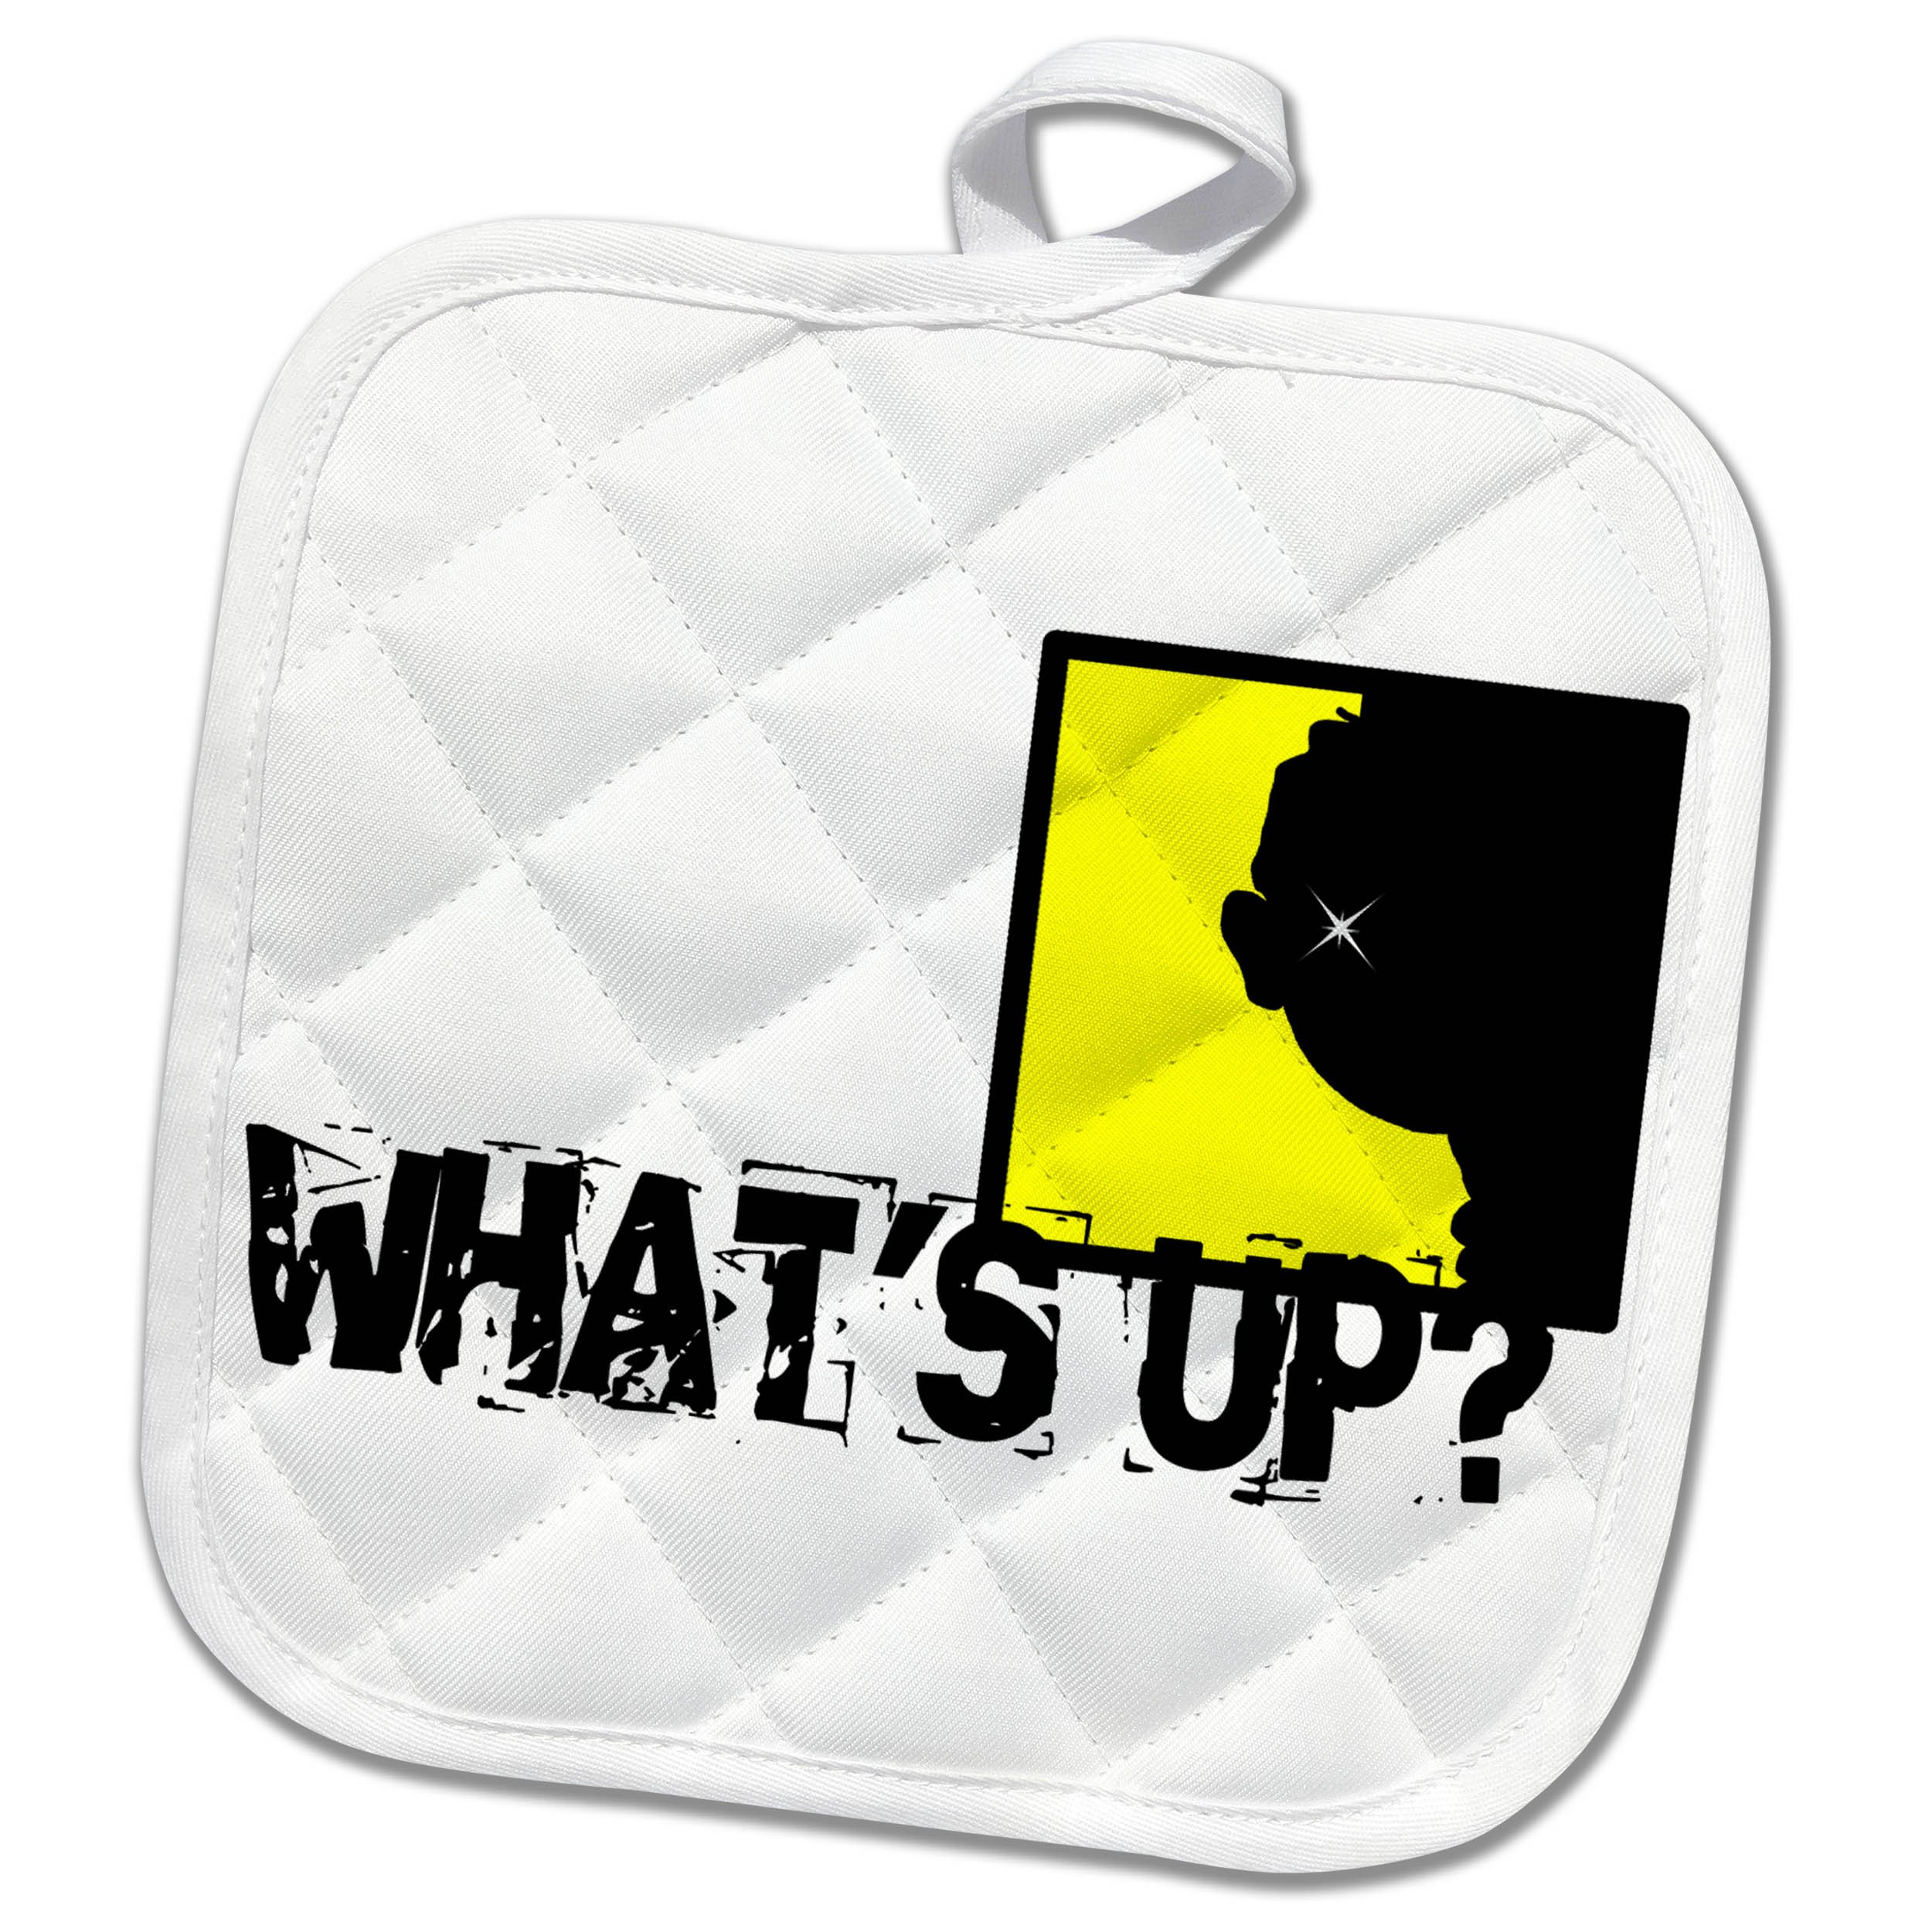 3dRose Alexis Design - Funny - A head in an yellow window. What is up. Funny design on white - 8x8 Potholder (phl_271649_1)